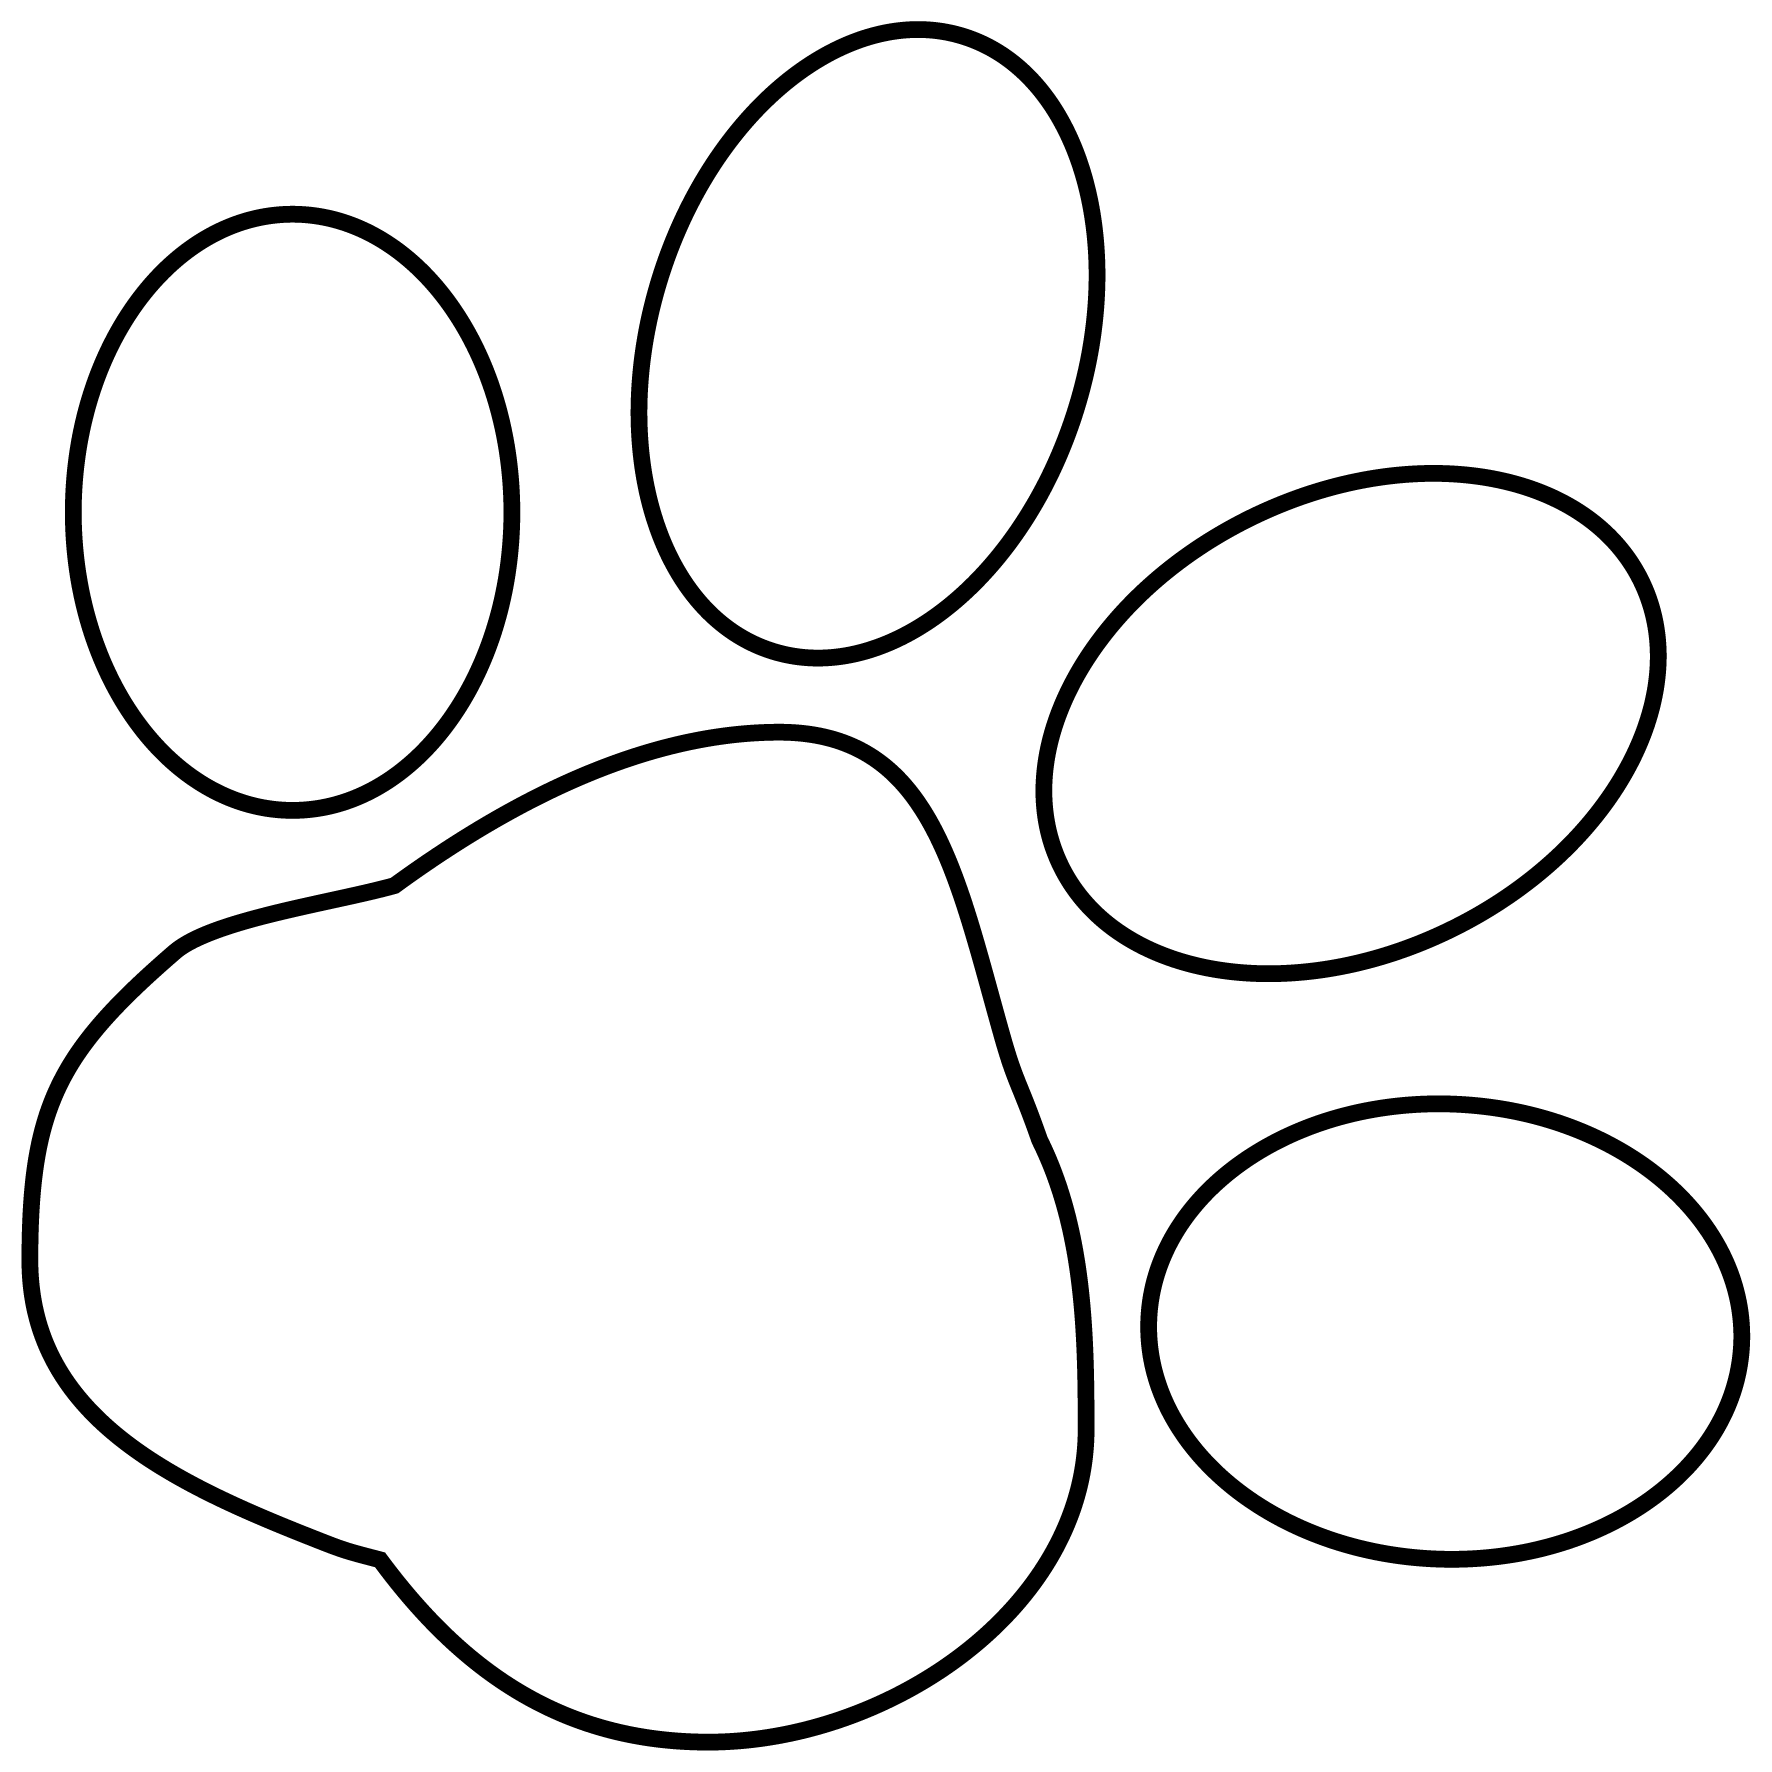 Pawprint Clipart Cheetah Pawprint Cheetah Transparent